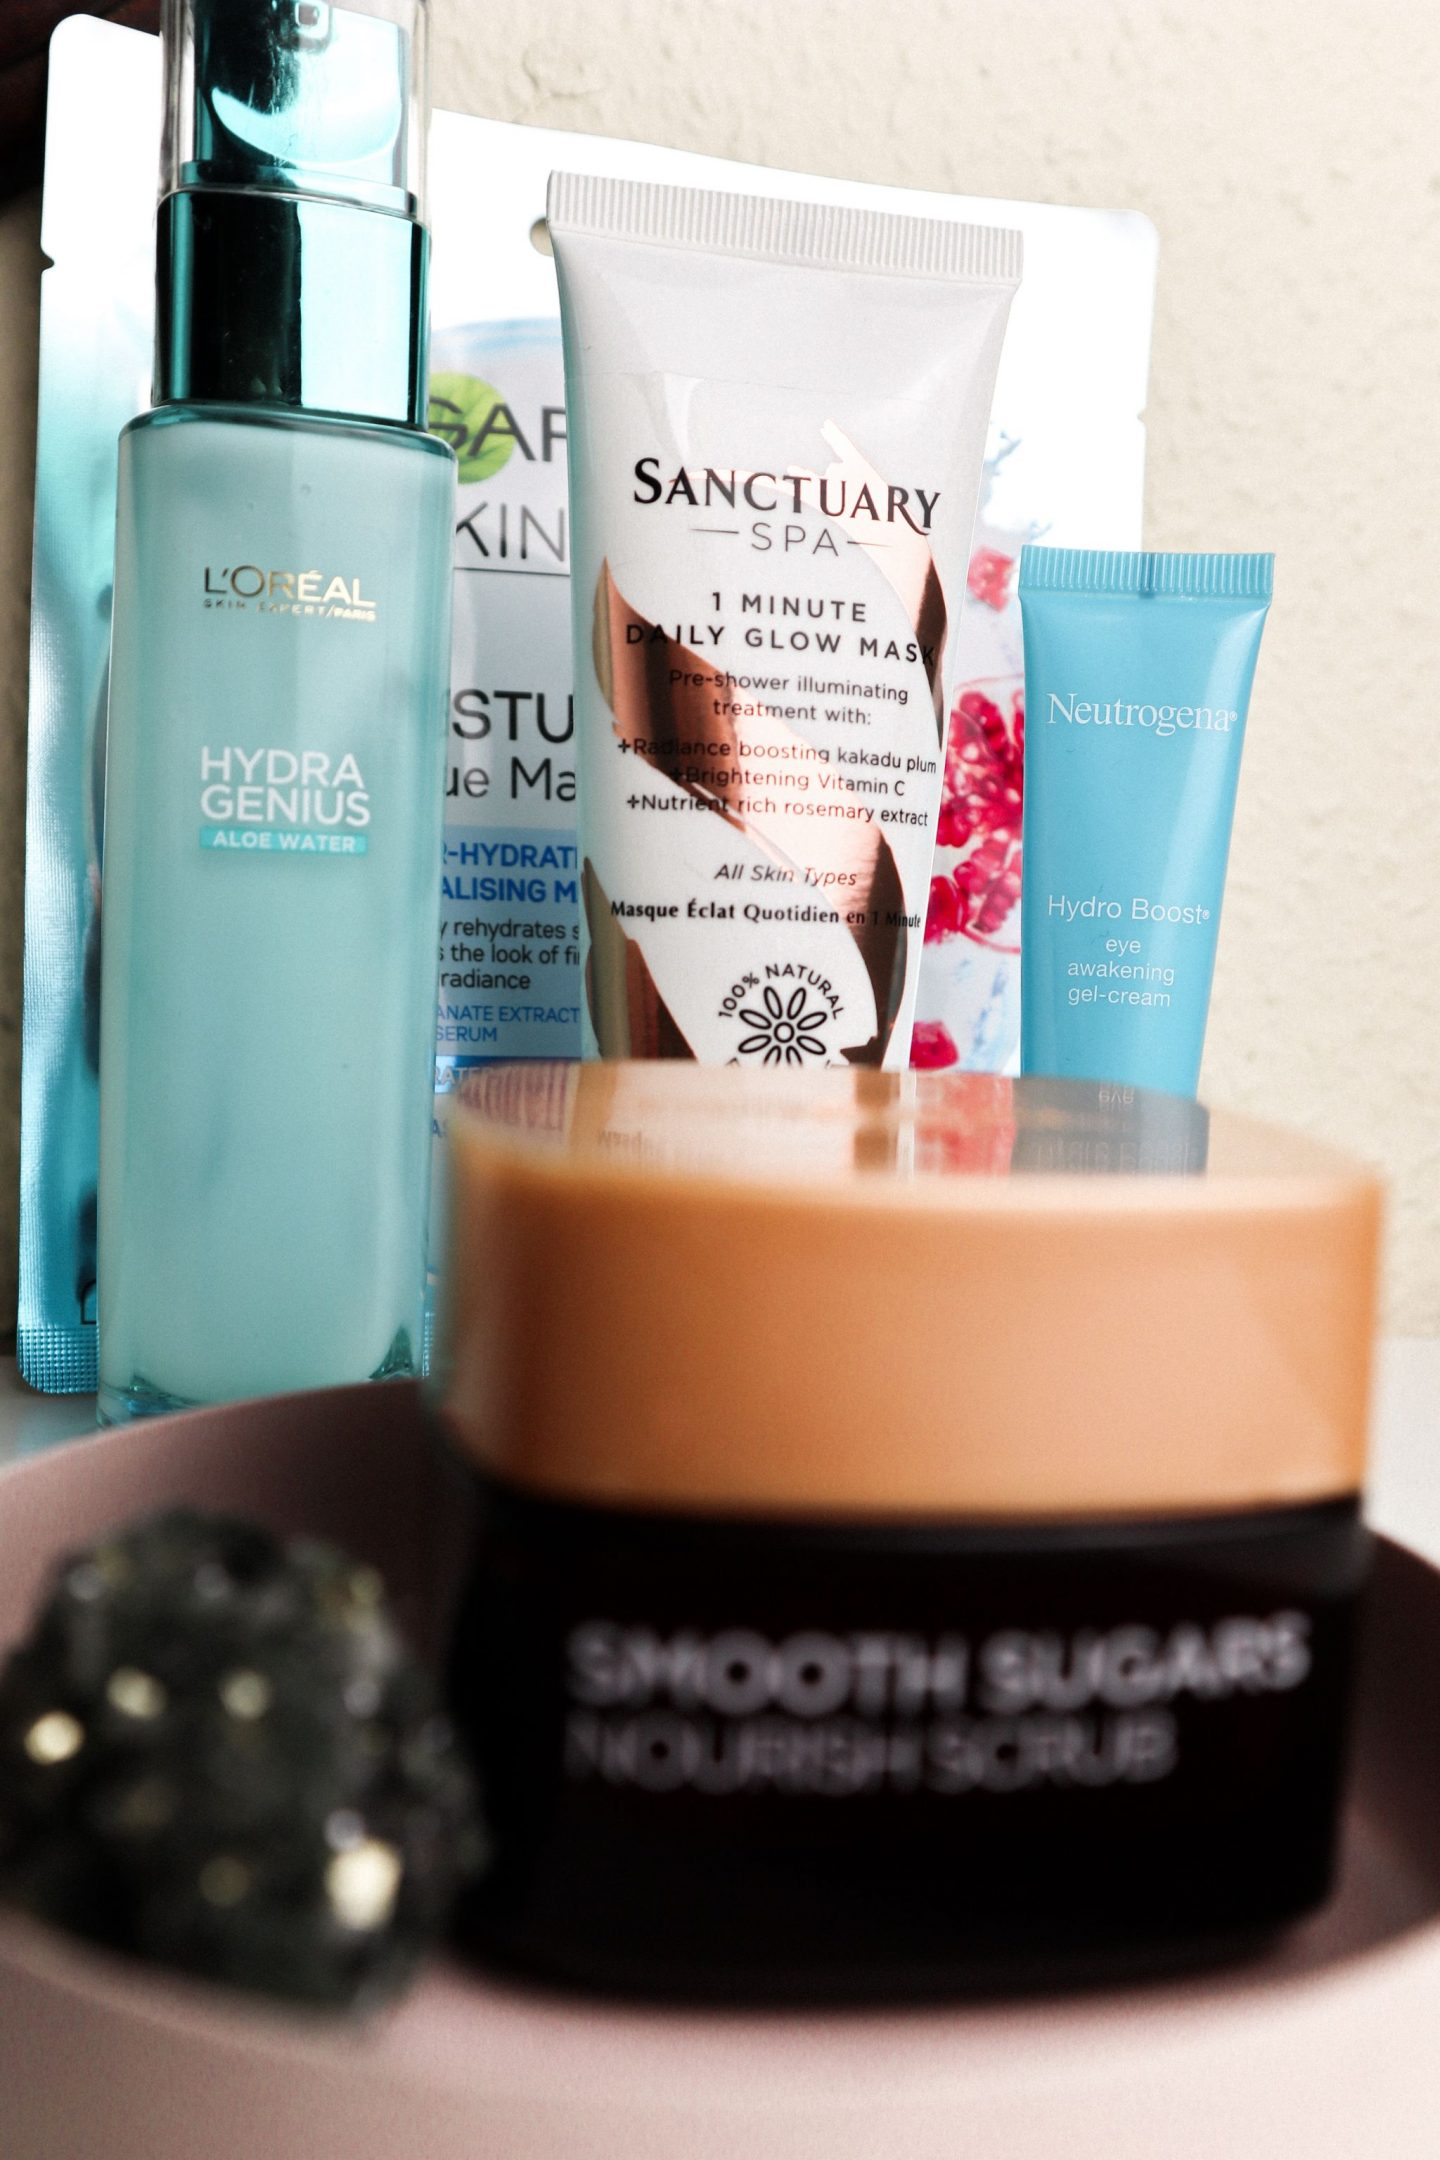 Best drugstore products - L'oreal, garnier and neutrogena